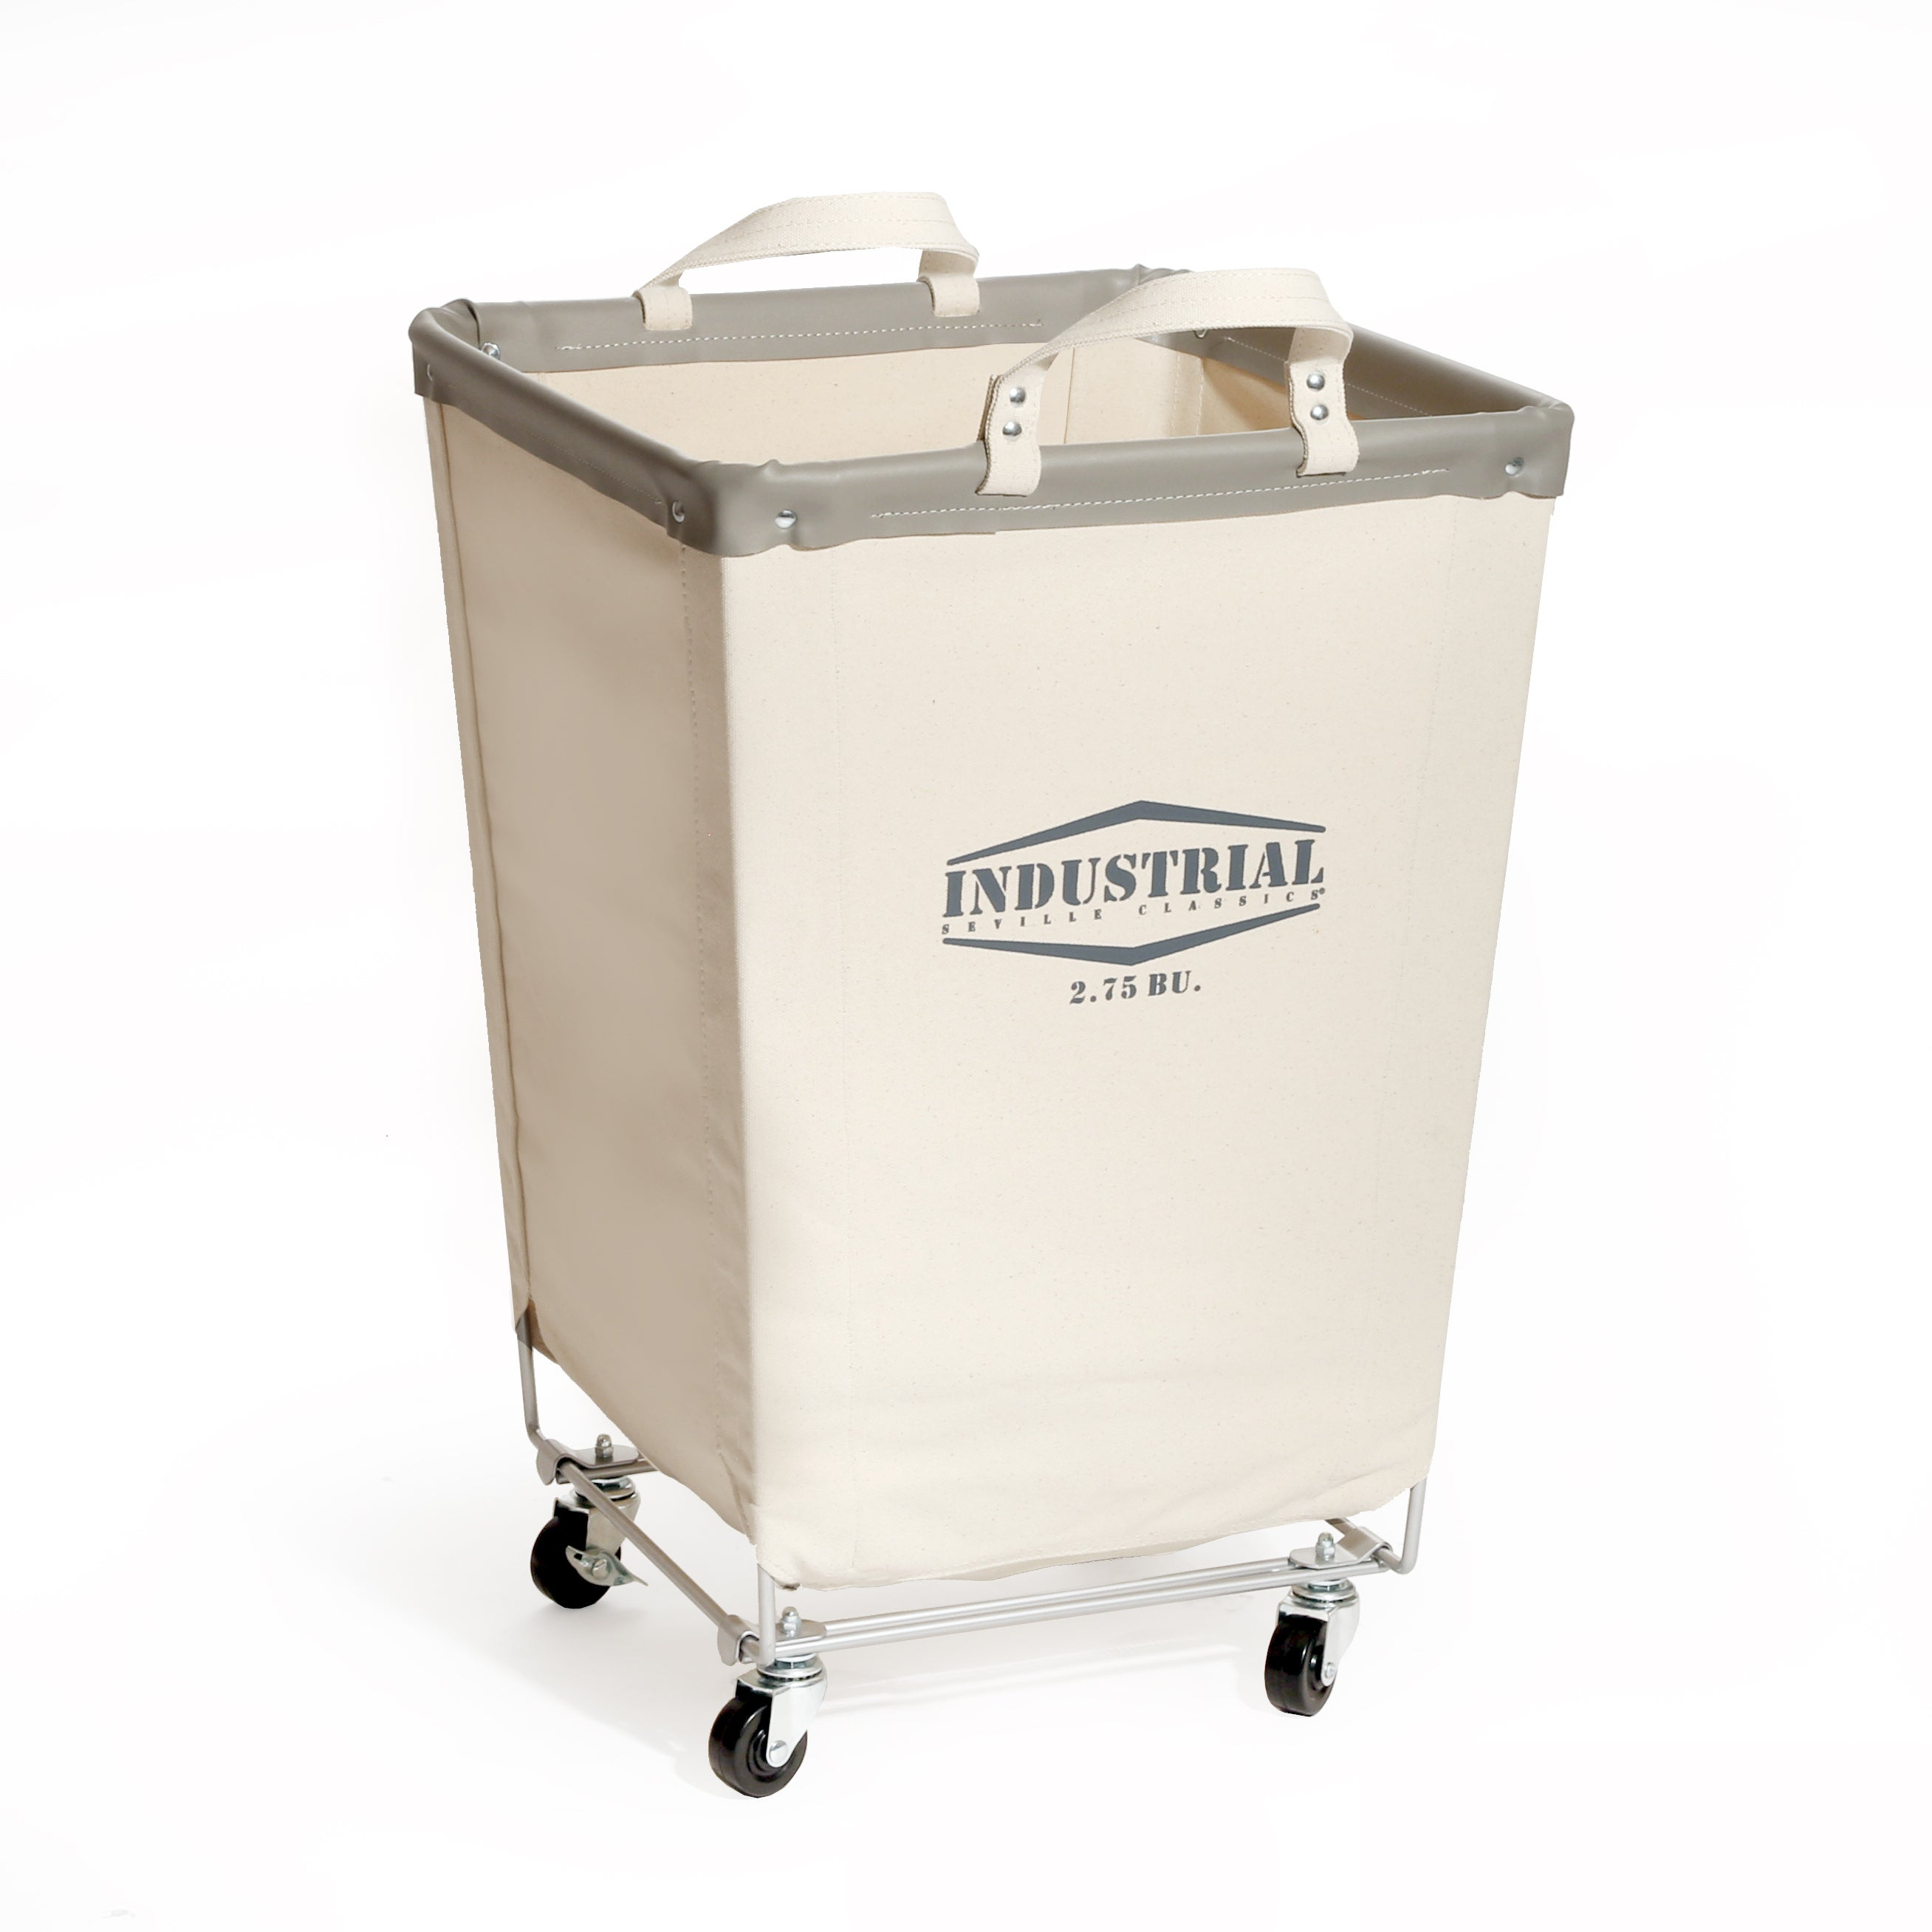 Seville Clics Commercial Heavy Duty Canvas Laundry Hamper With Wheels Free Shipping Today 13001637